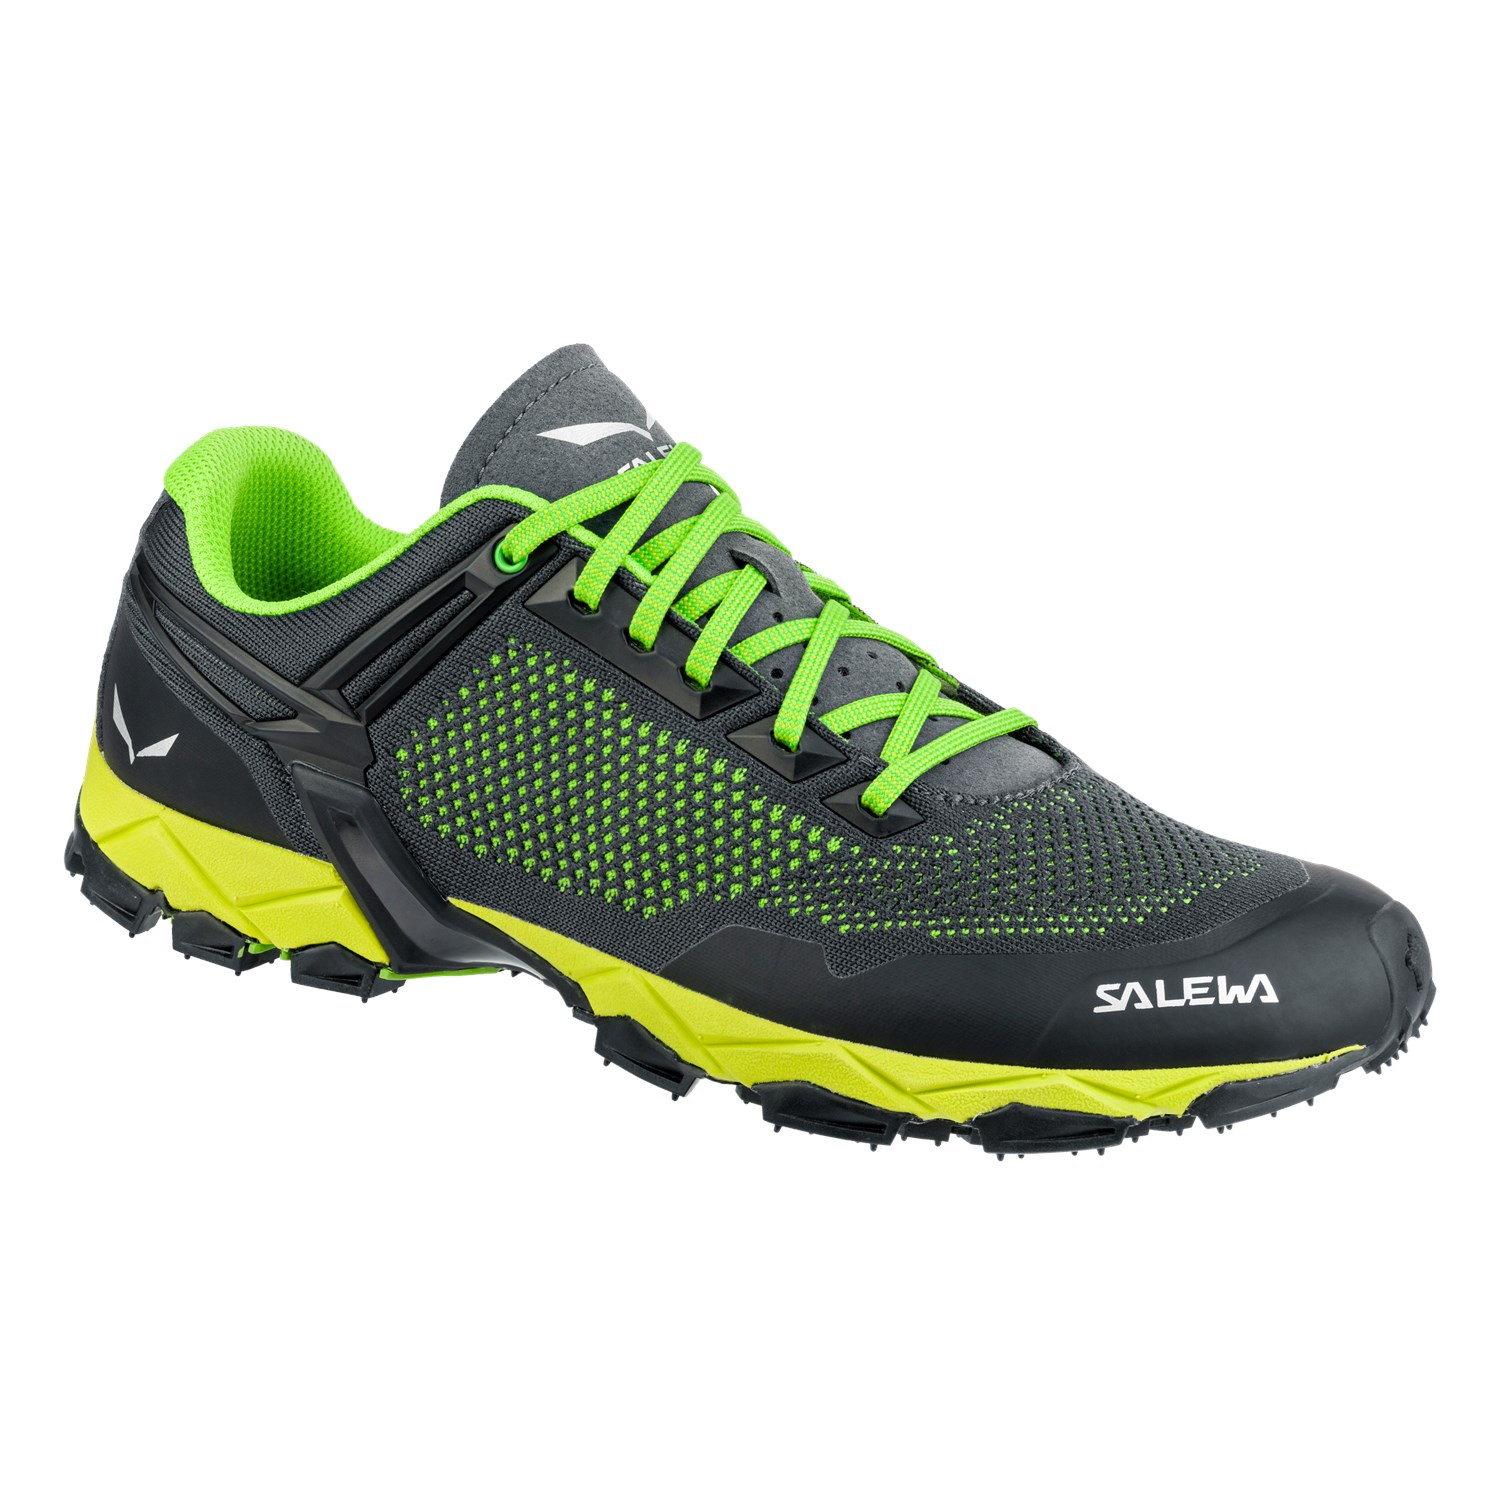 5b42d0867b714 Men s Outdoor Shoes and Boots » Pure Mountain